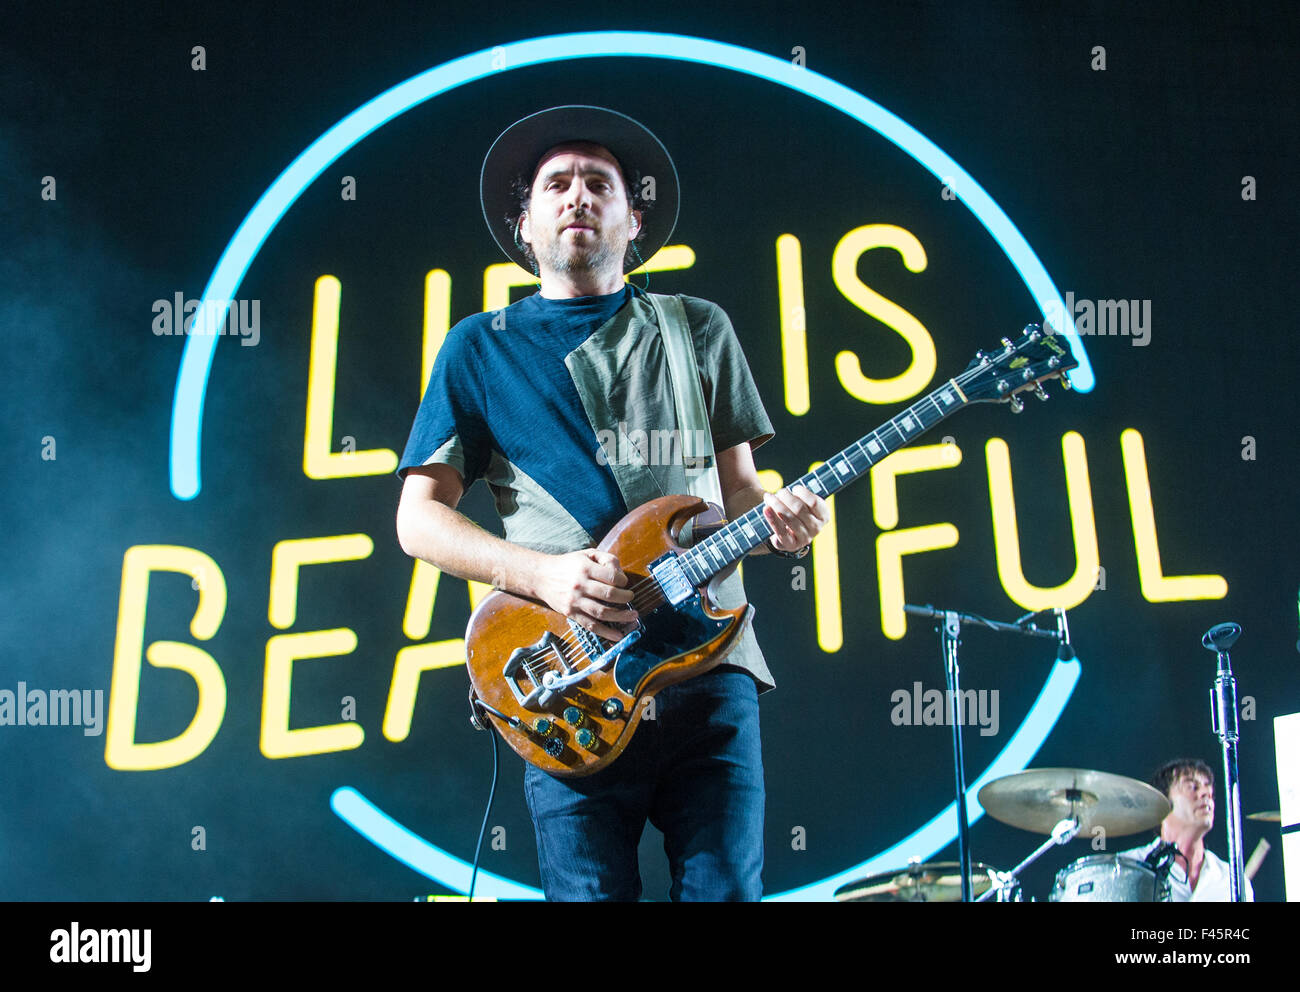 Musician James Shaw of Metric performs on stage during Life Is Beautiful Festival in Las Vegas Stock Photo